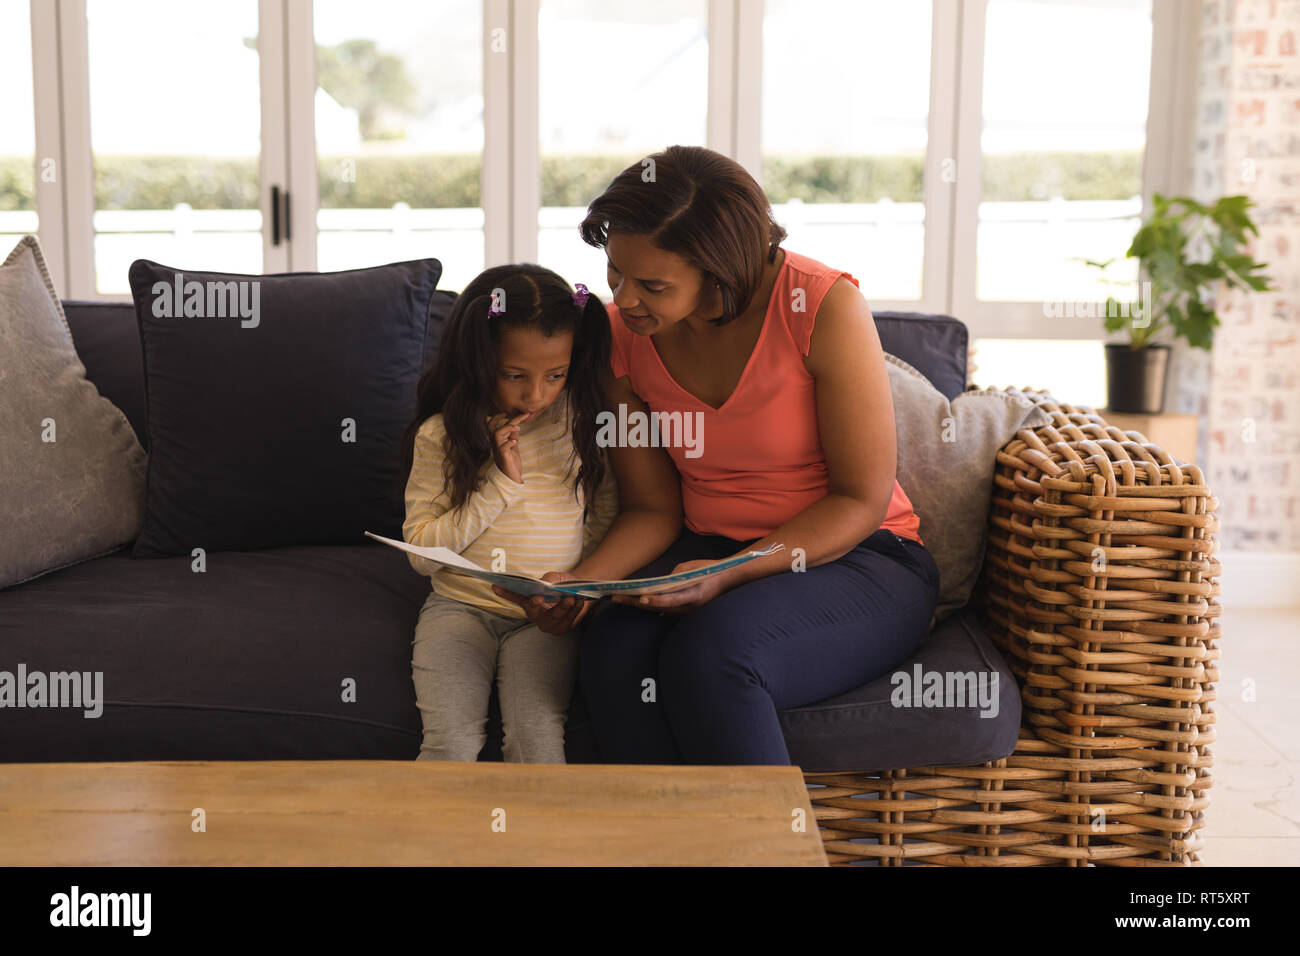 Grandmother and granddaughter reading a story book in living room - Stock Image